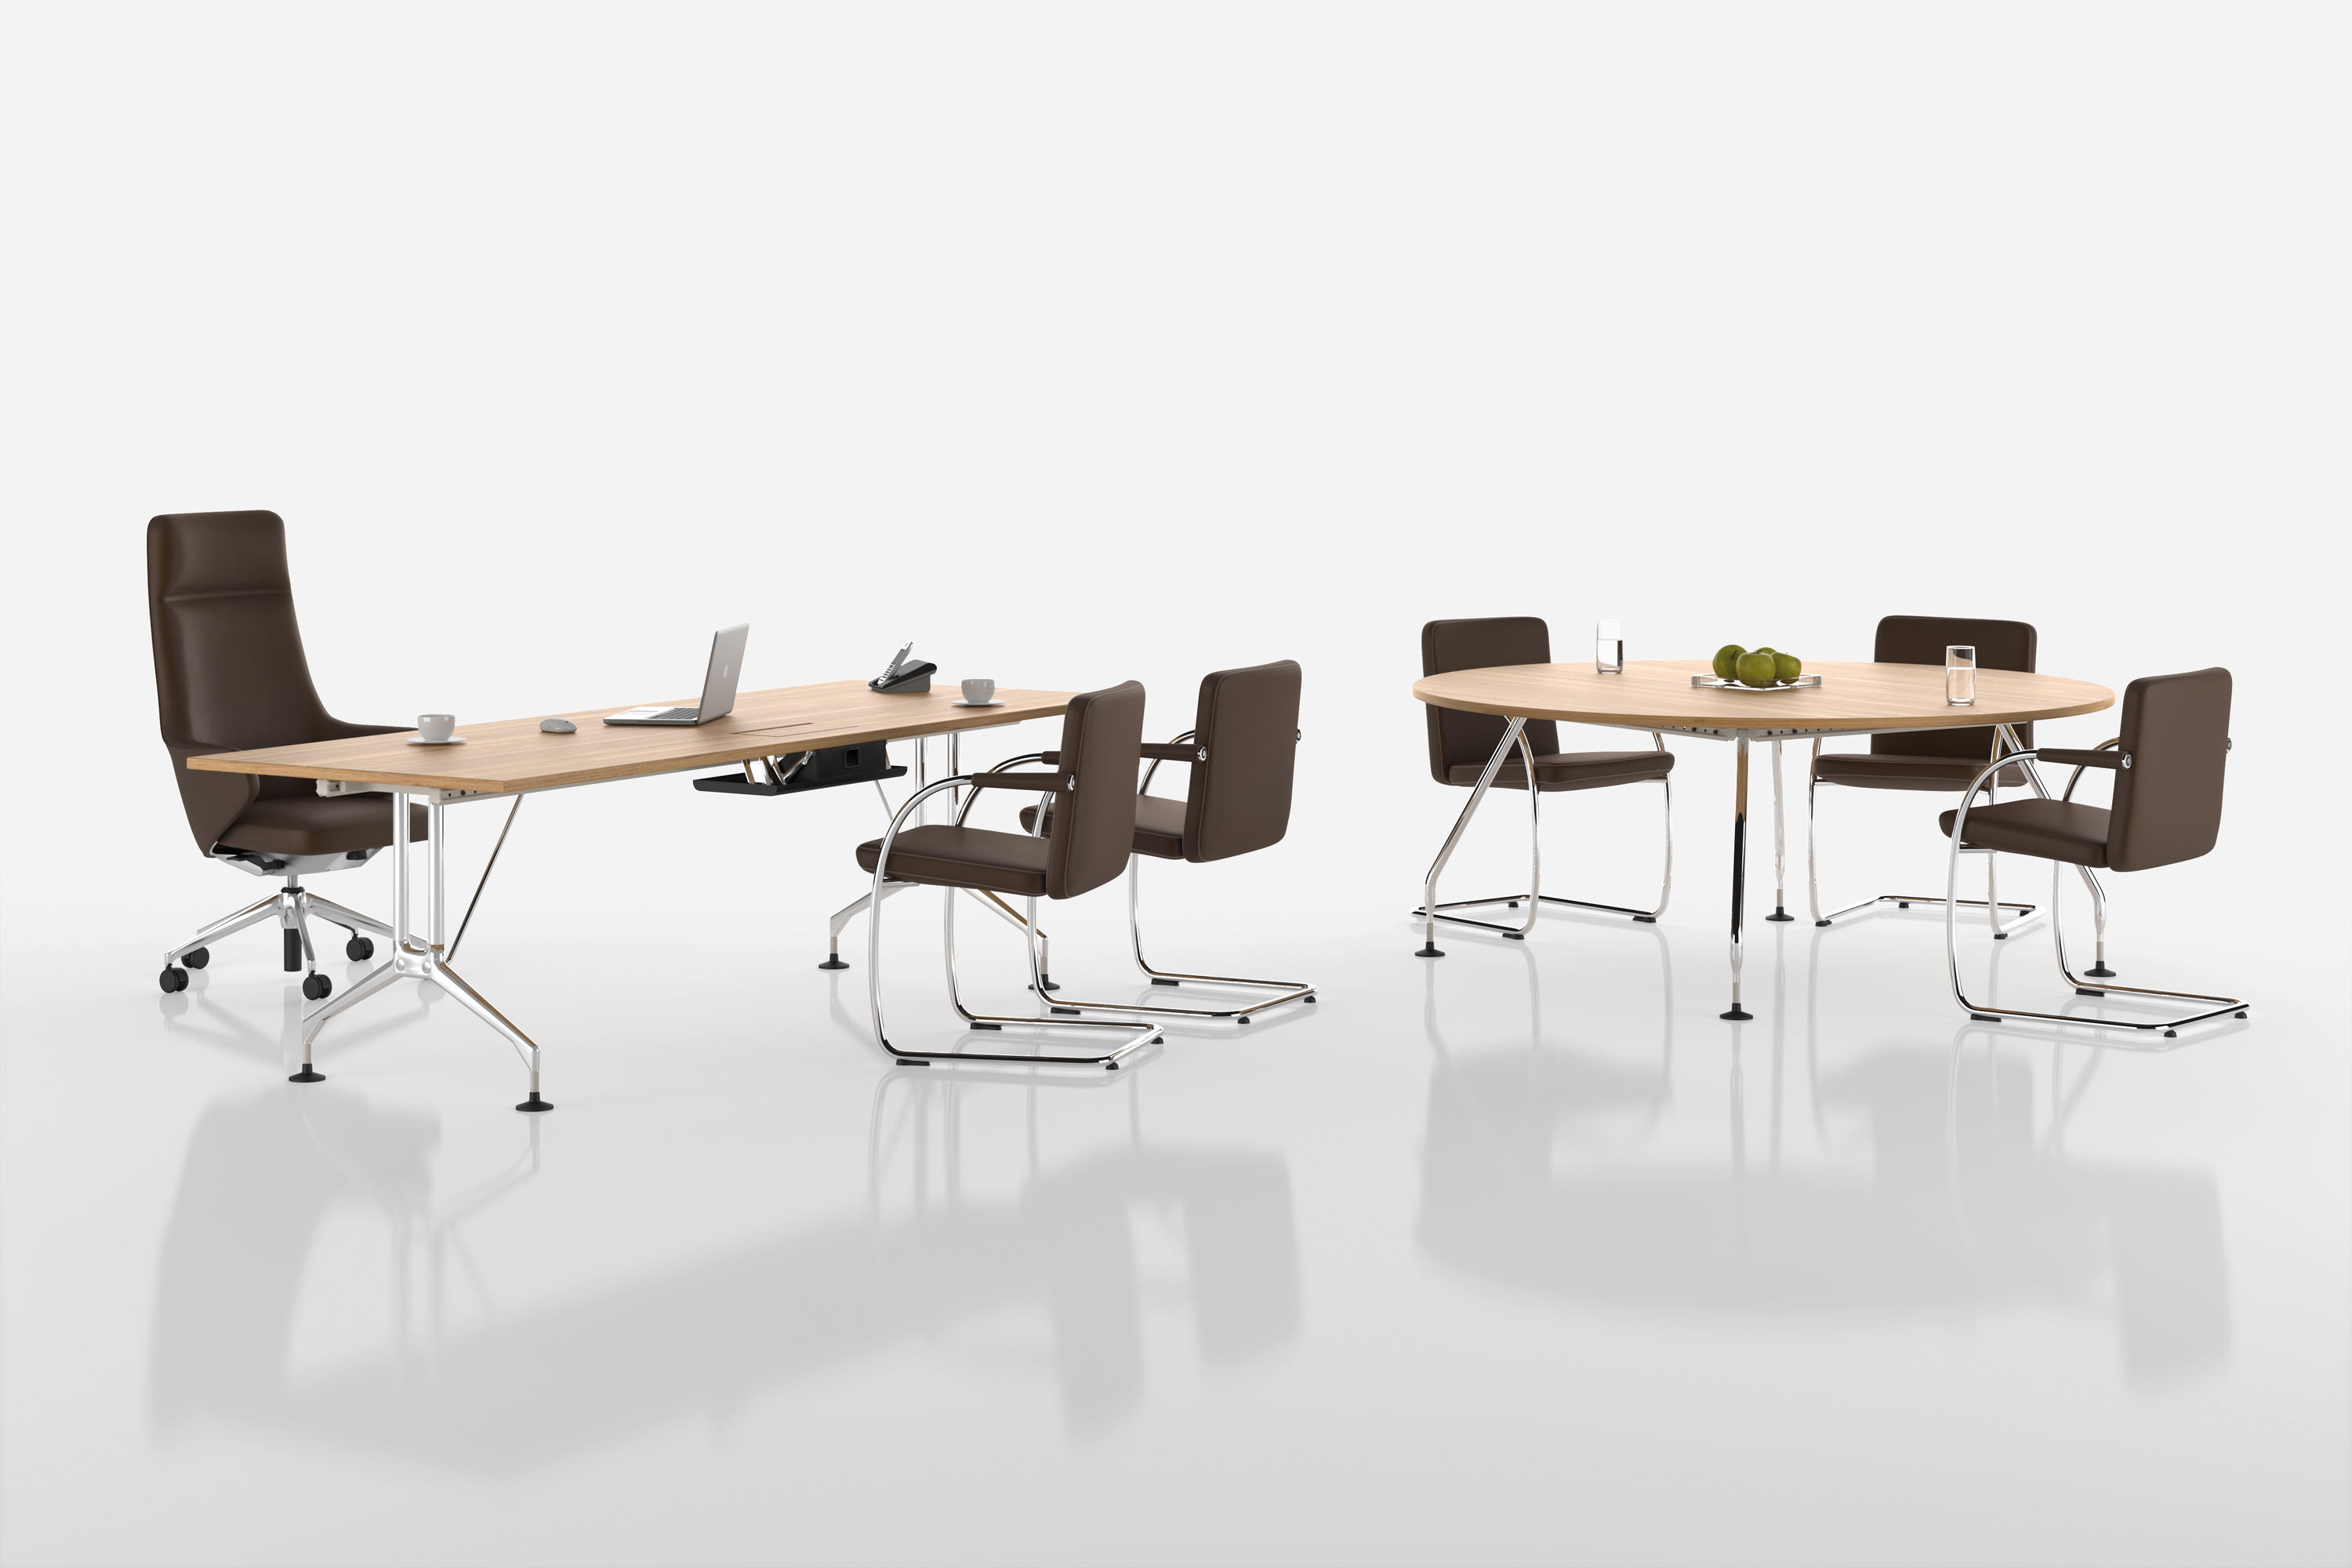 AD HOC OFFICE - Desking systems from Vitra | Architonic